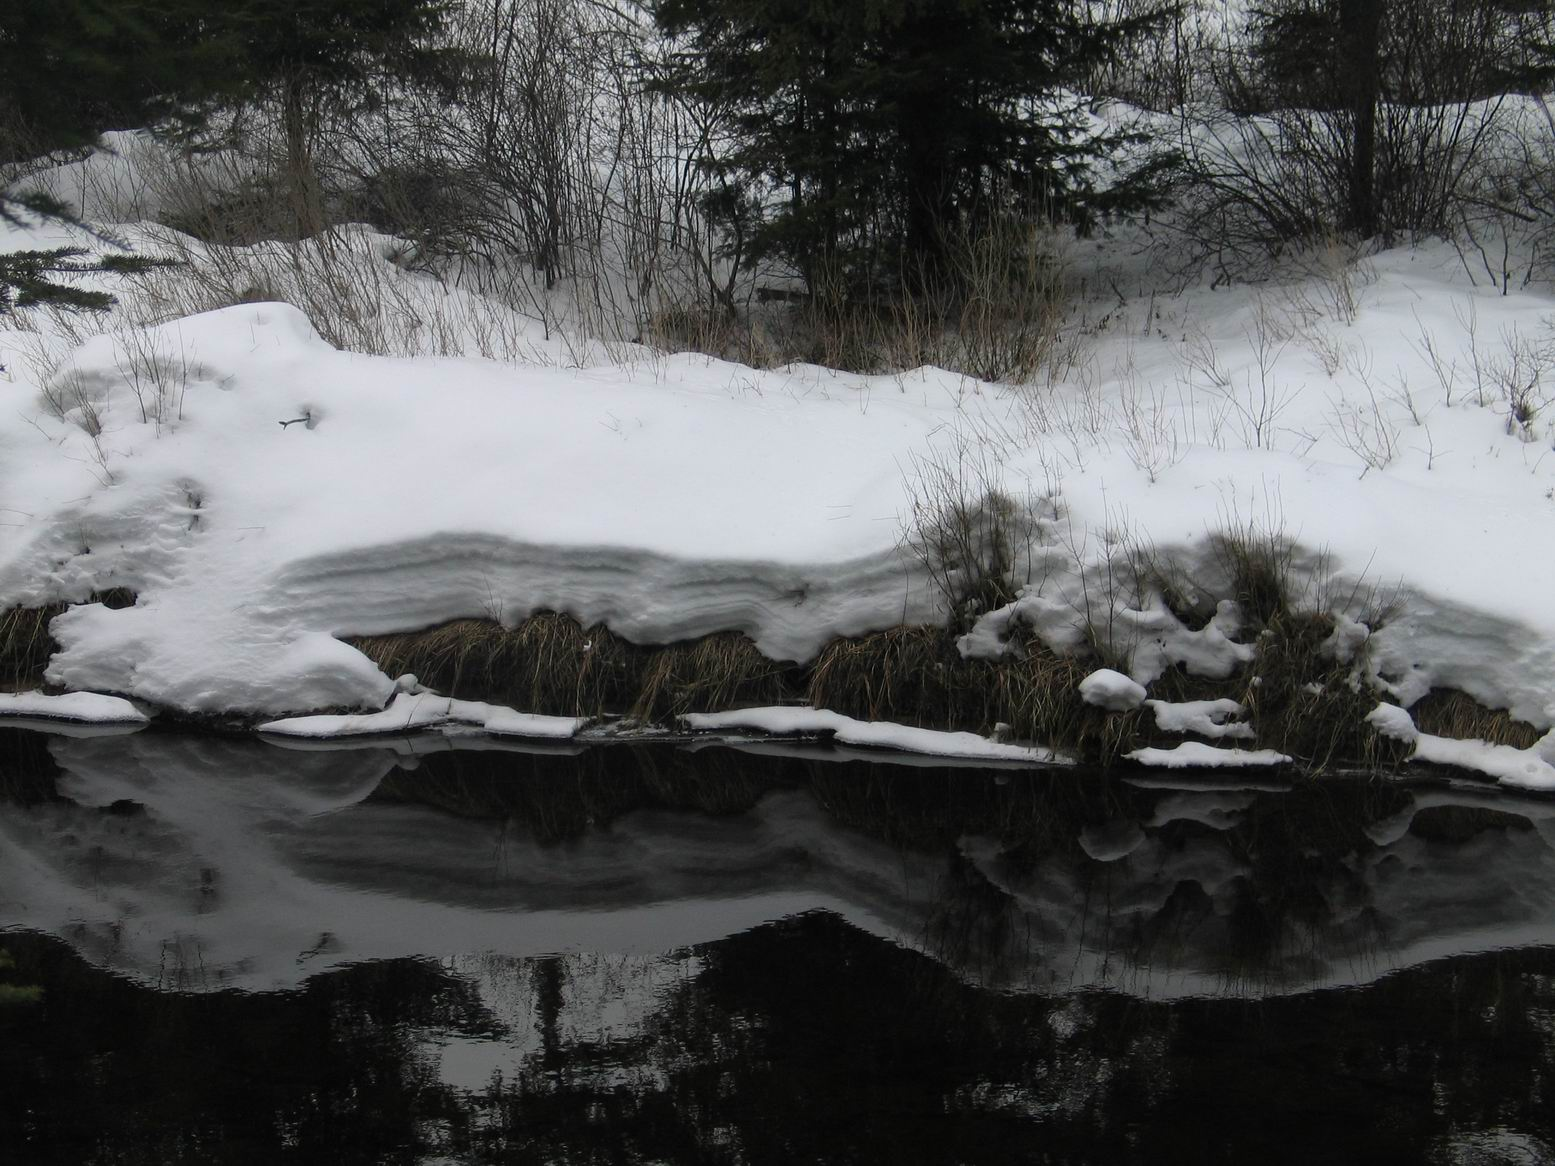 Algonquin, February 2012. Photo by Ulli Diemer.